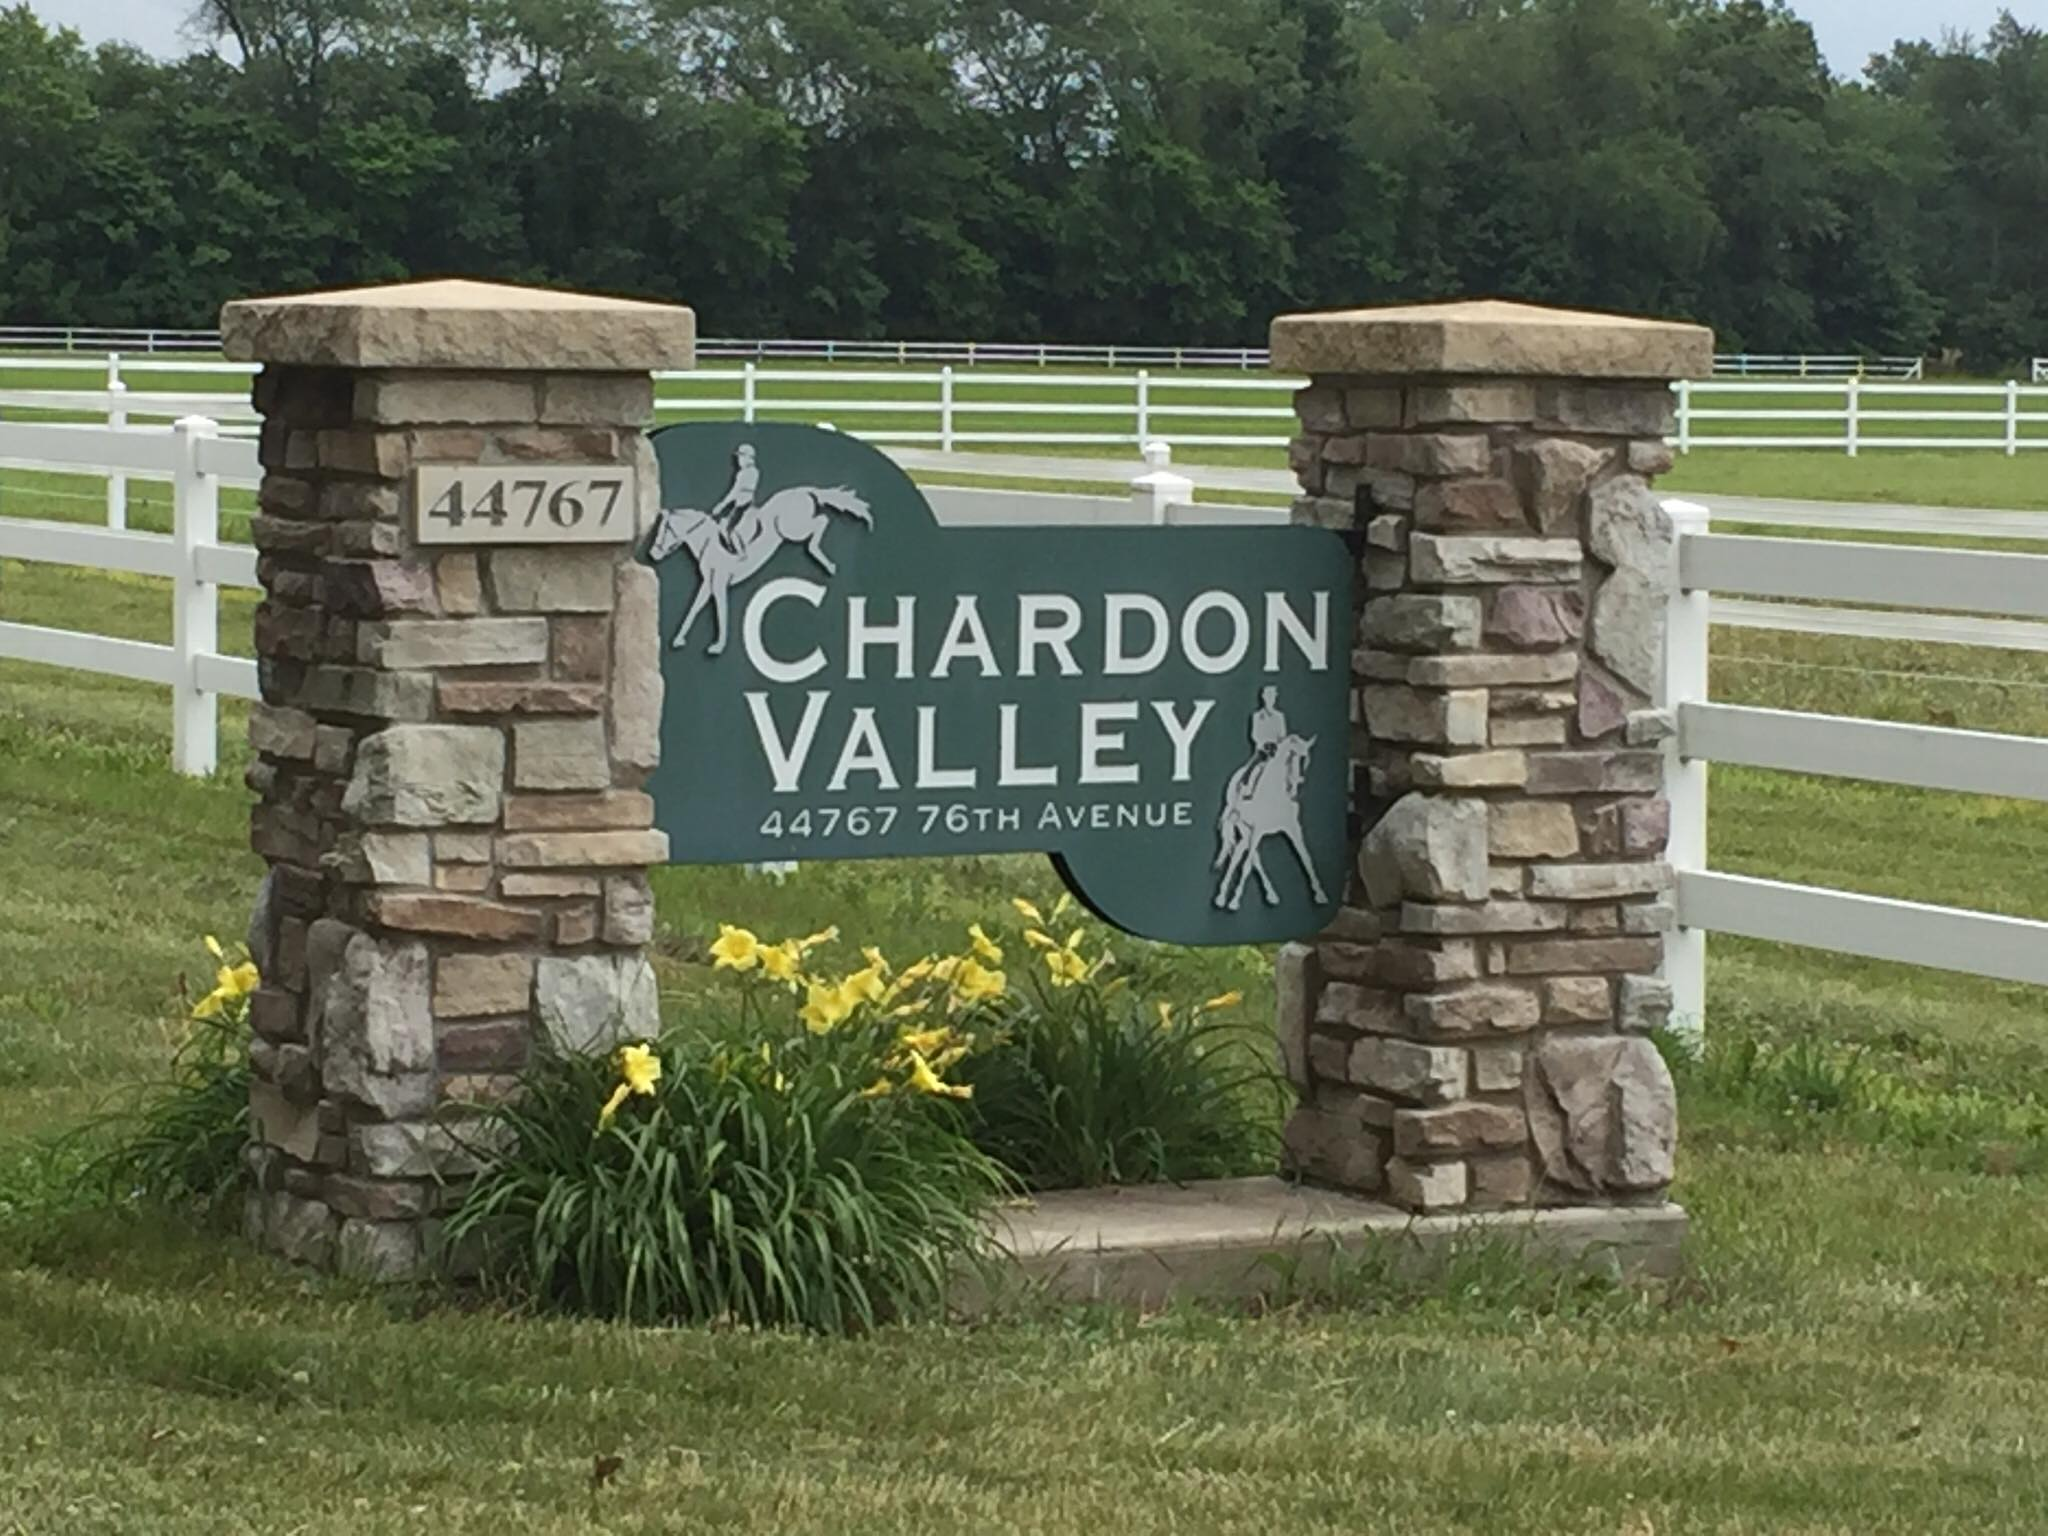 Up Next:Chardon Valley USEA - Sept 7! - LATE FEES WAIVED! GET YOUR ENTRIES IN ASAP!